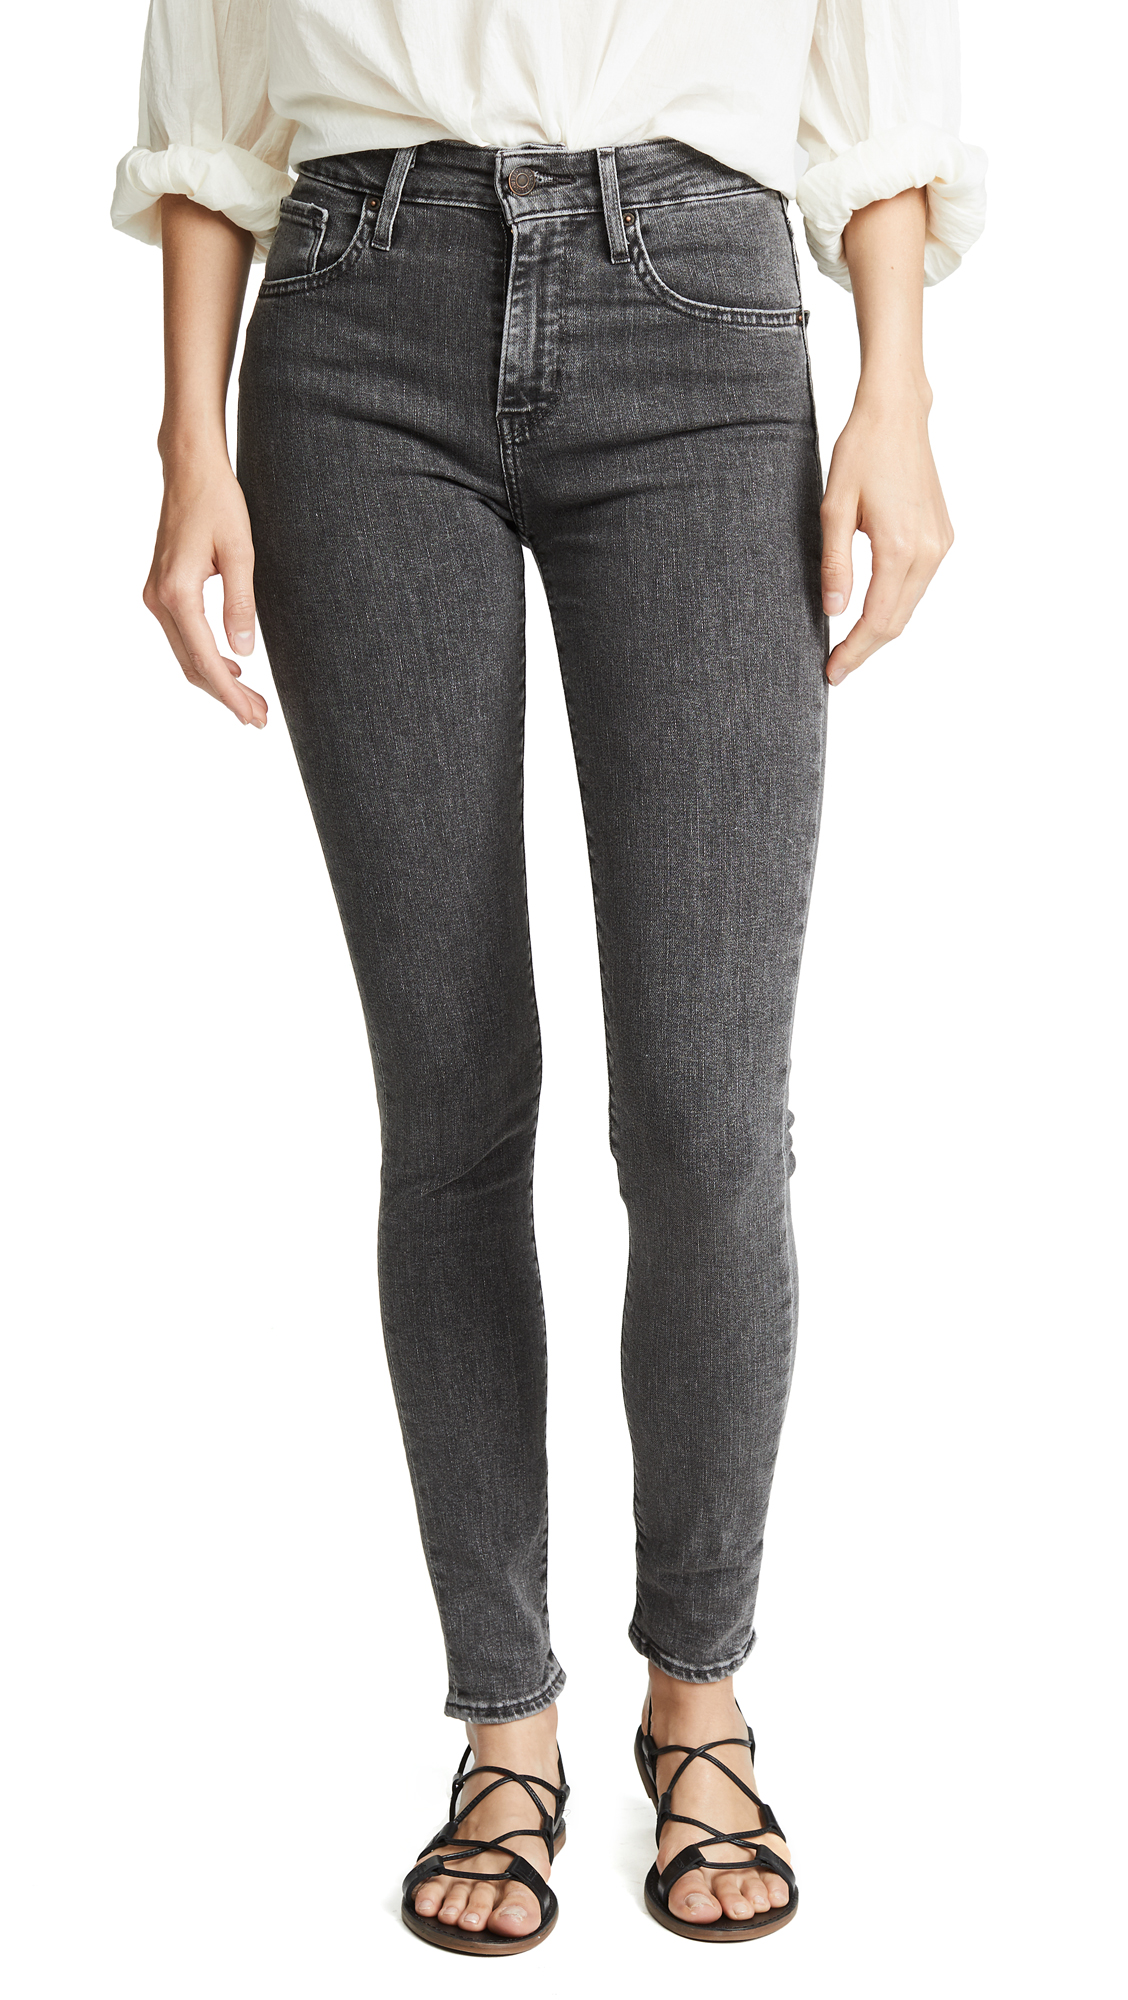 Levis 721 High Rise Skinny Jeans - High-Top Black